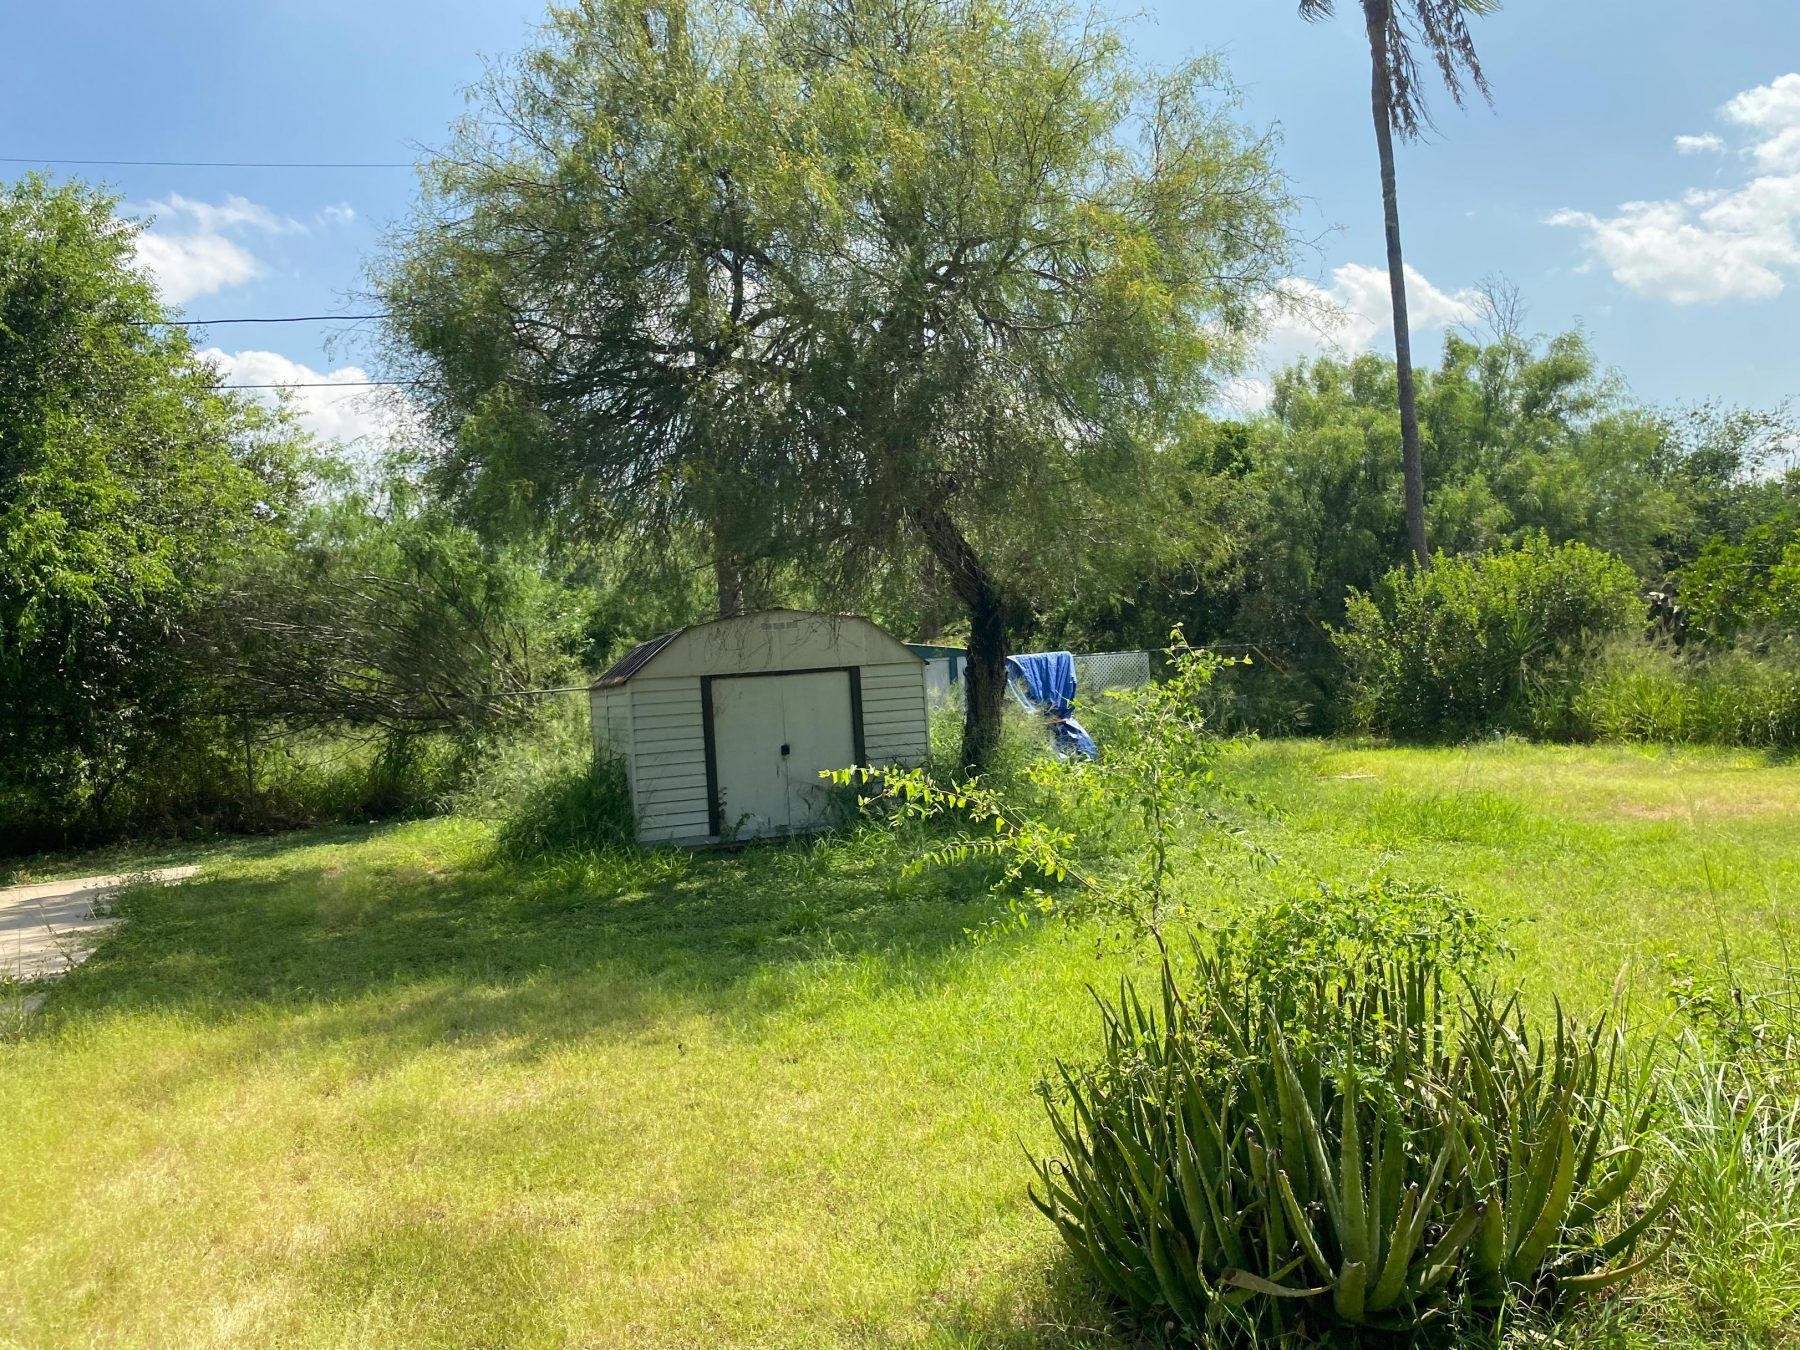 Palmview, TX RV park with green space